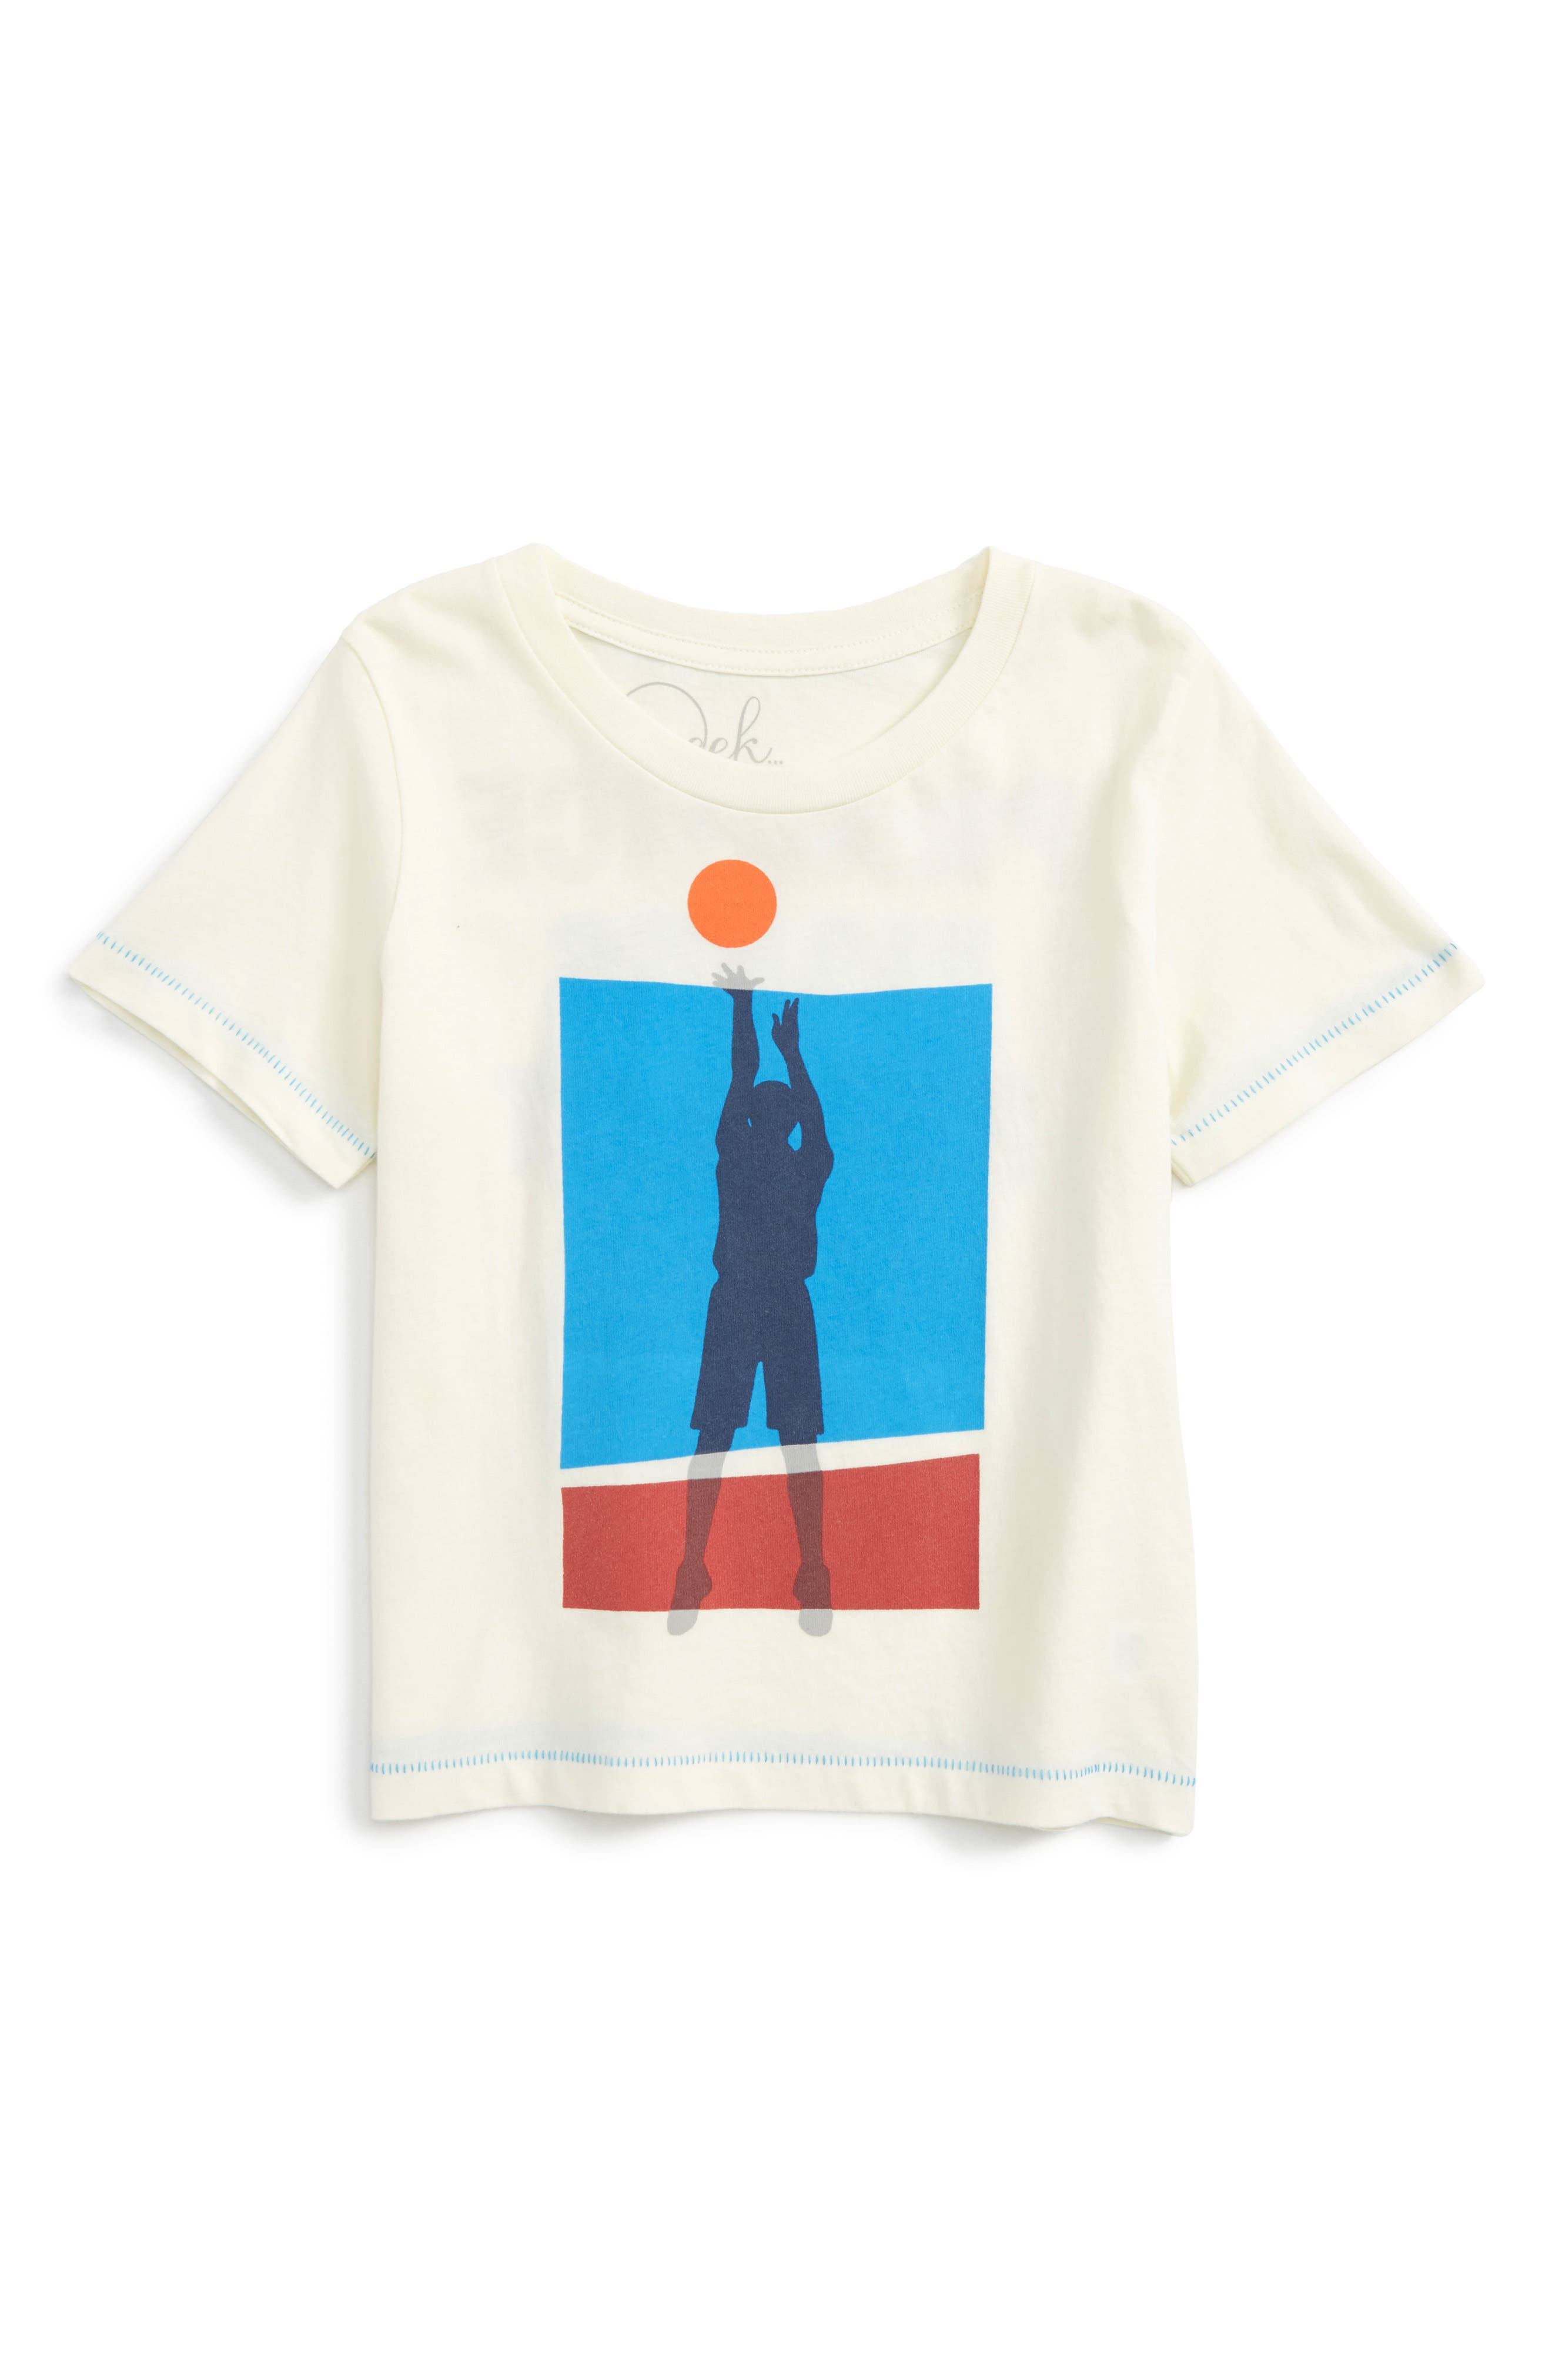 Basketball Practice T-Shirt,                         Main,                         color, Ivory